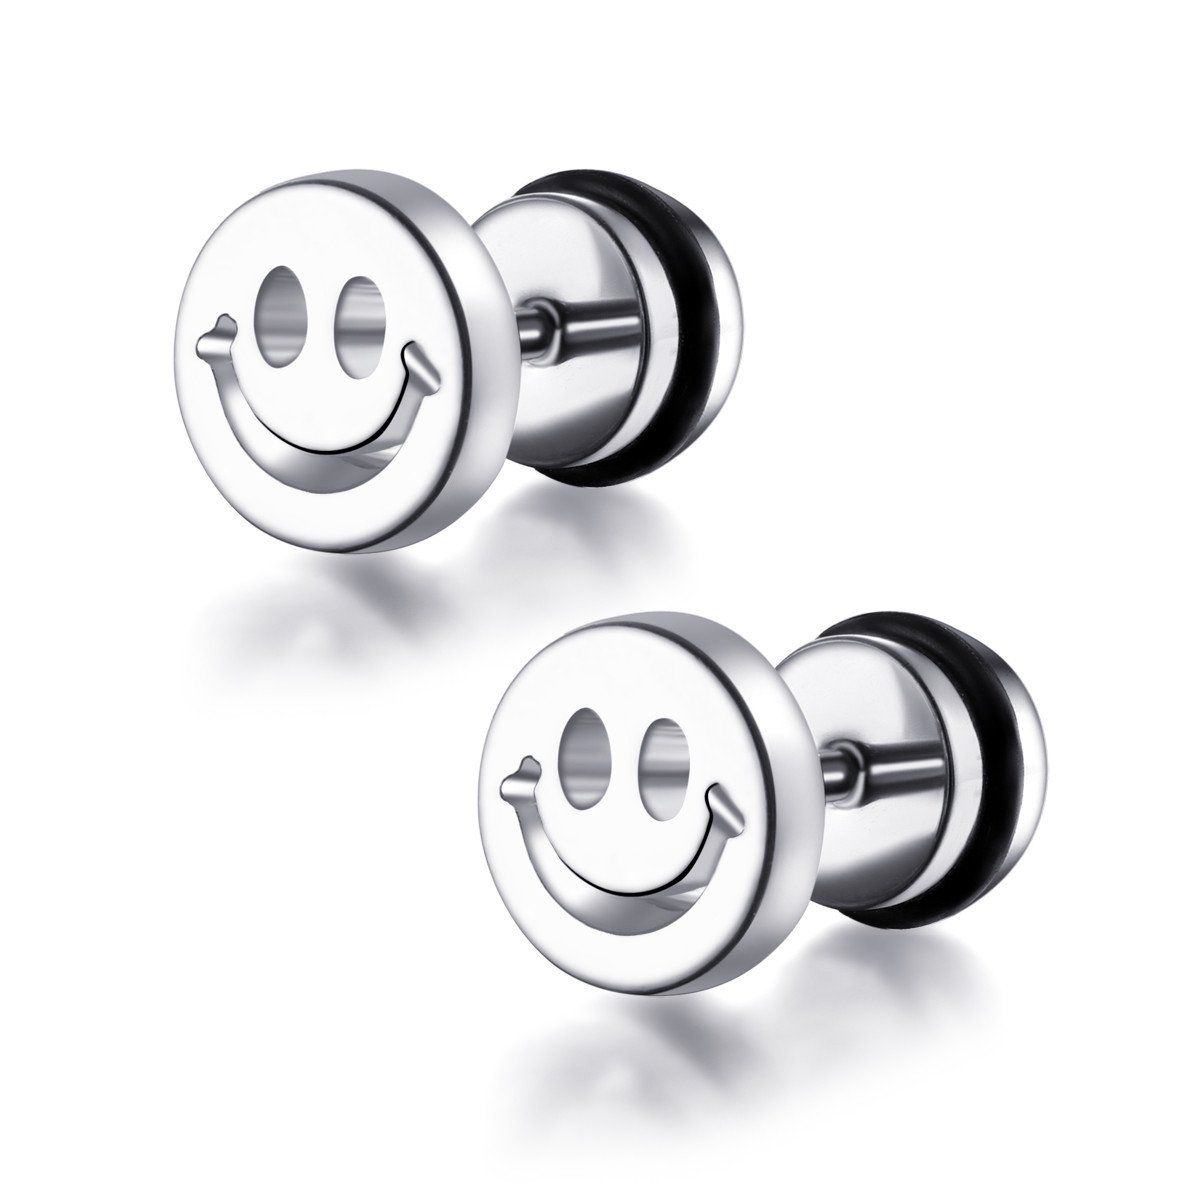 Stainless Steel Jewelry Smiley Face Fake Plug Earrings With O-Ring (Sold In Pairs)